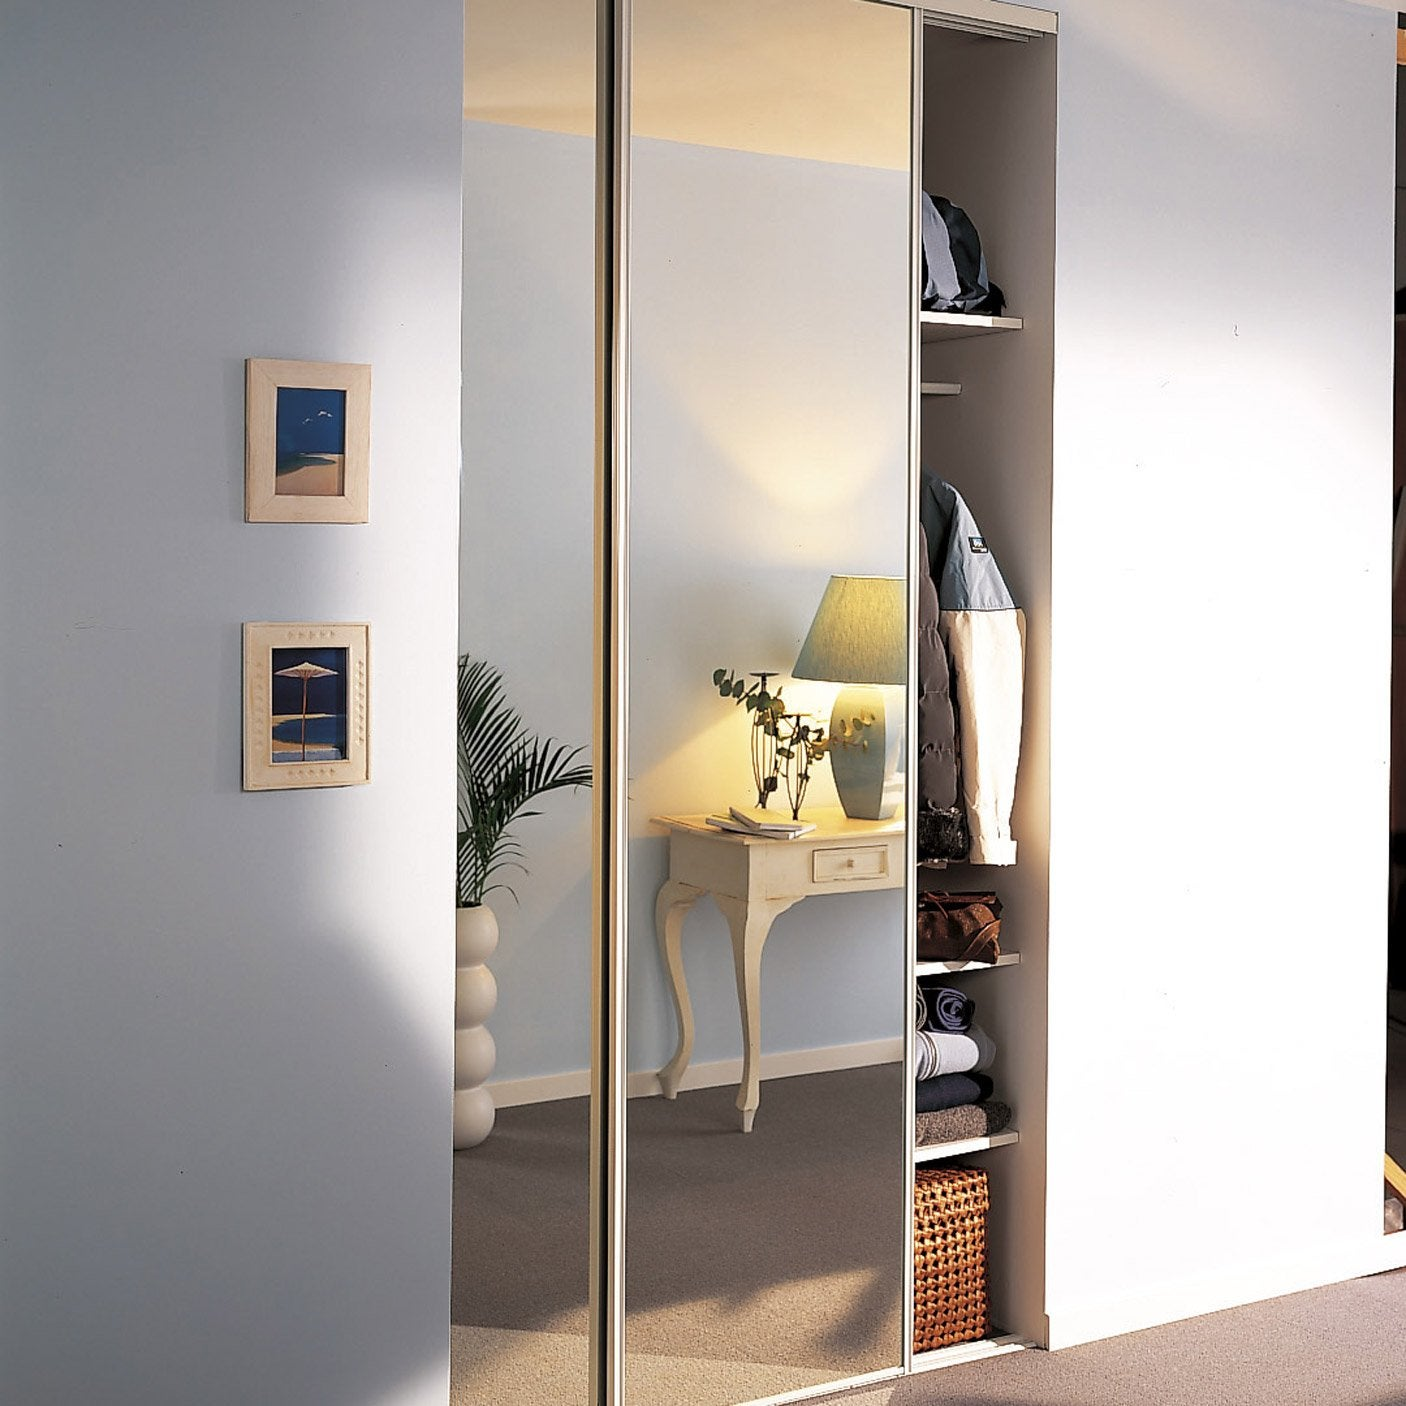 lot de 2 portes de placard coulissante miroir argent x cm leroy merlin. Black Bedroom Furniture Sets. Home Design Ideas